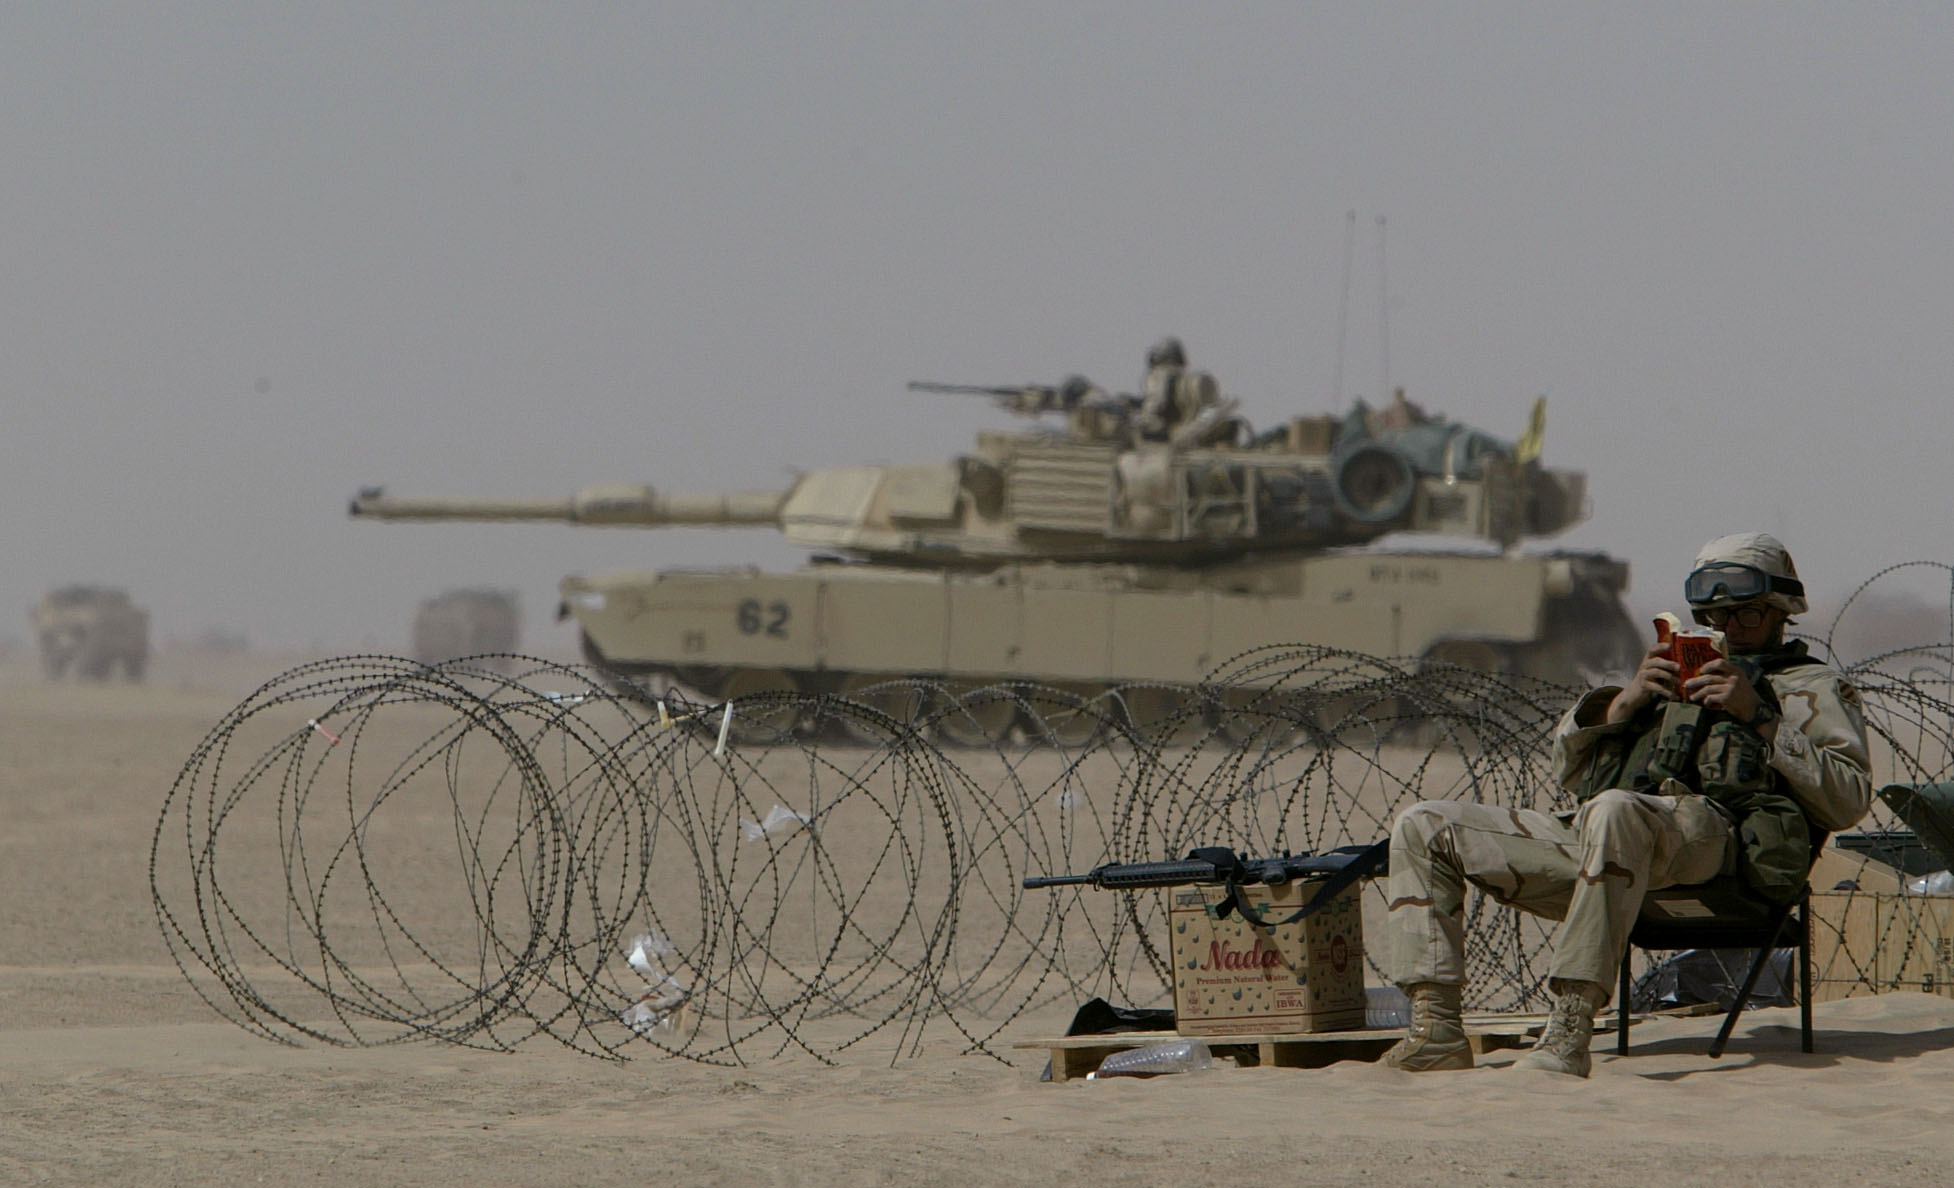 A US army infantry soldier reads a book as a M1A1 Abrams tank passes his back somewhere in the desert outside Kuwait City, March 13, 2003. REUTERS/Kai Pfaffenbach